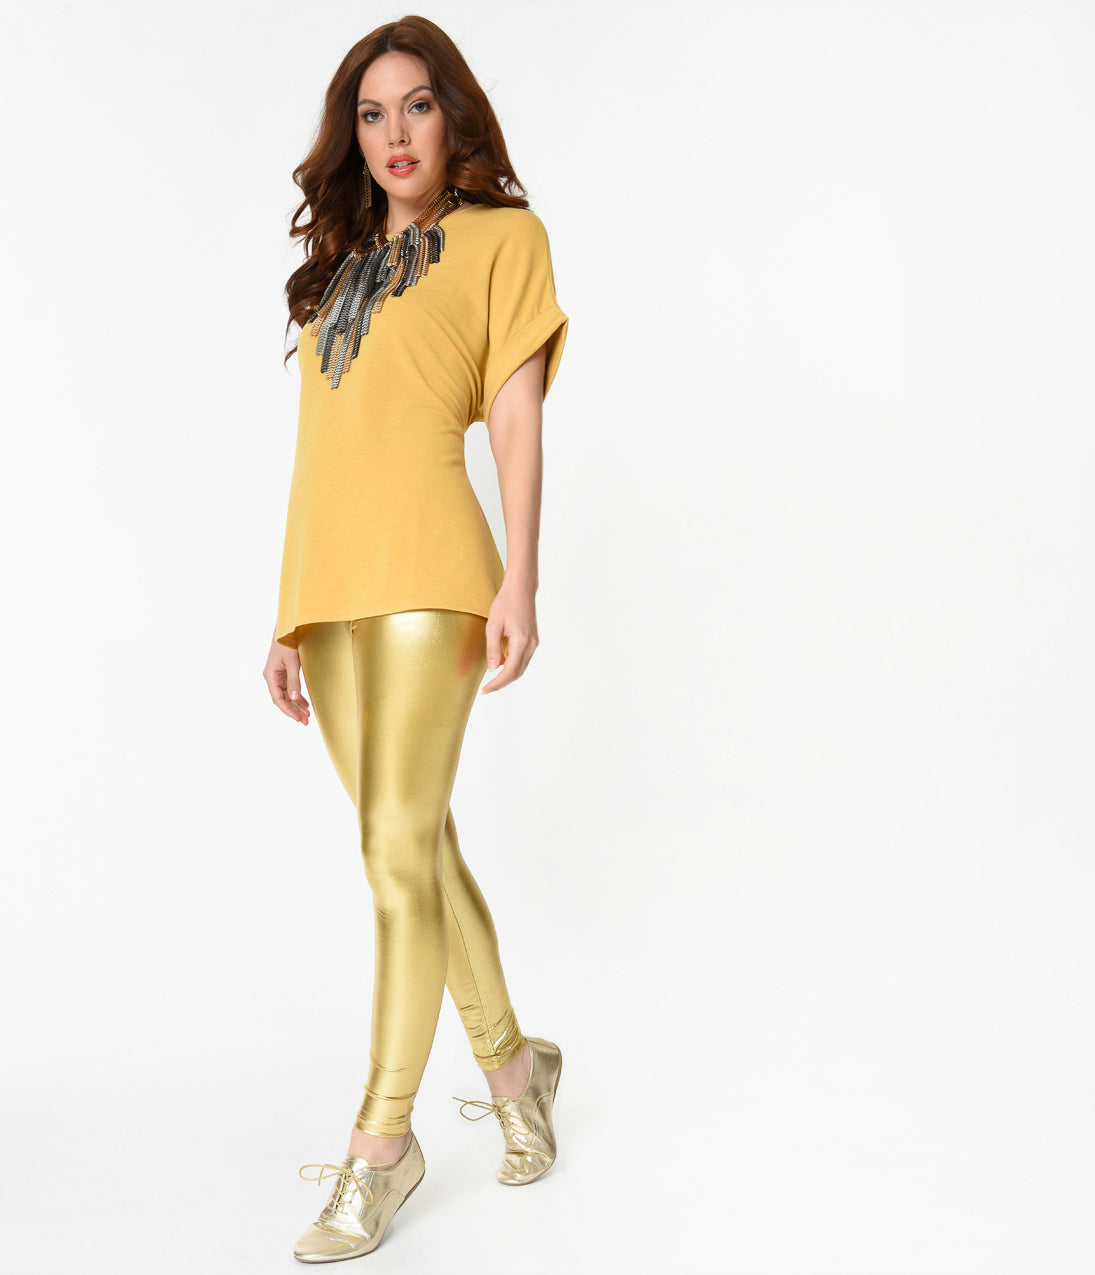 Vintage High Waisted Trousers, Sailor Pants, Jeans Retro Style Shiny Metallic Gold Stretch Leggings $22.00 AT vintagedancer.com